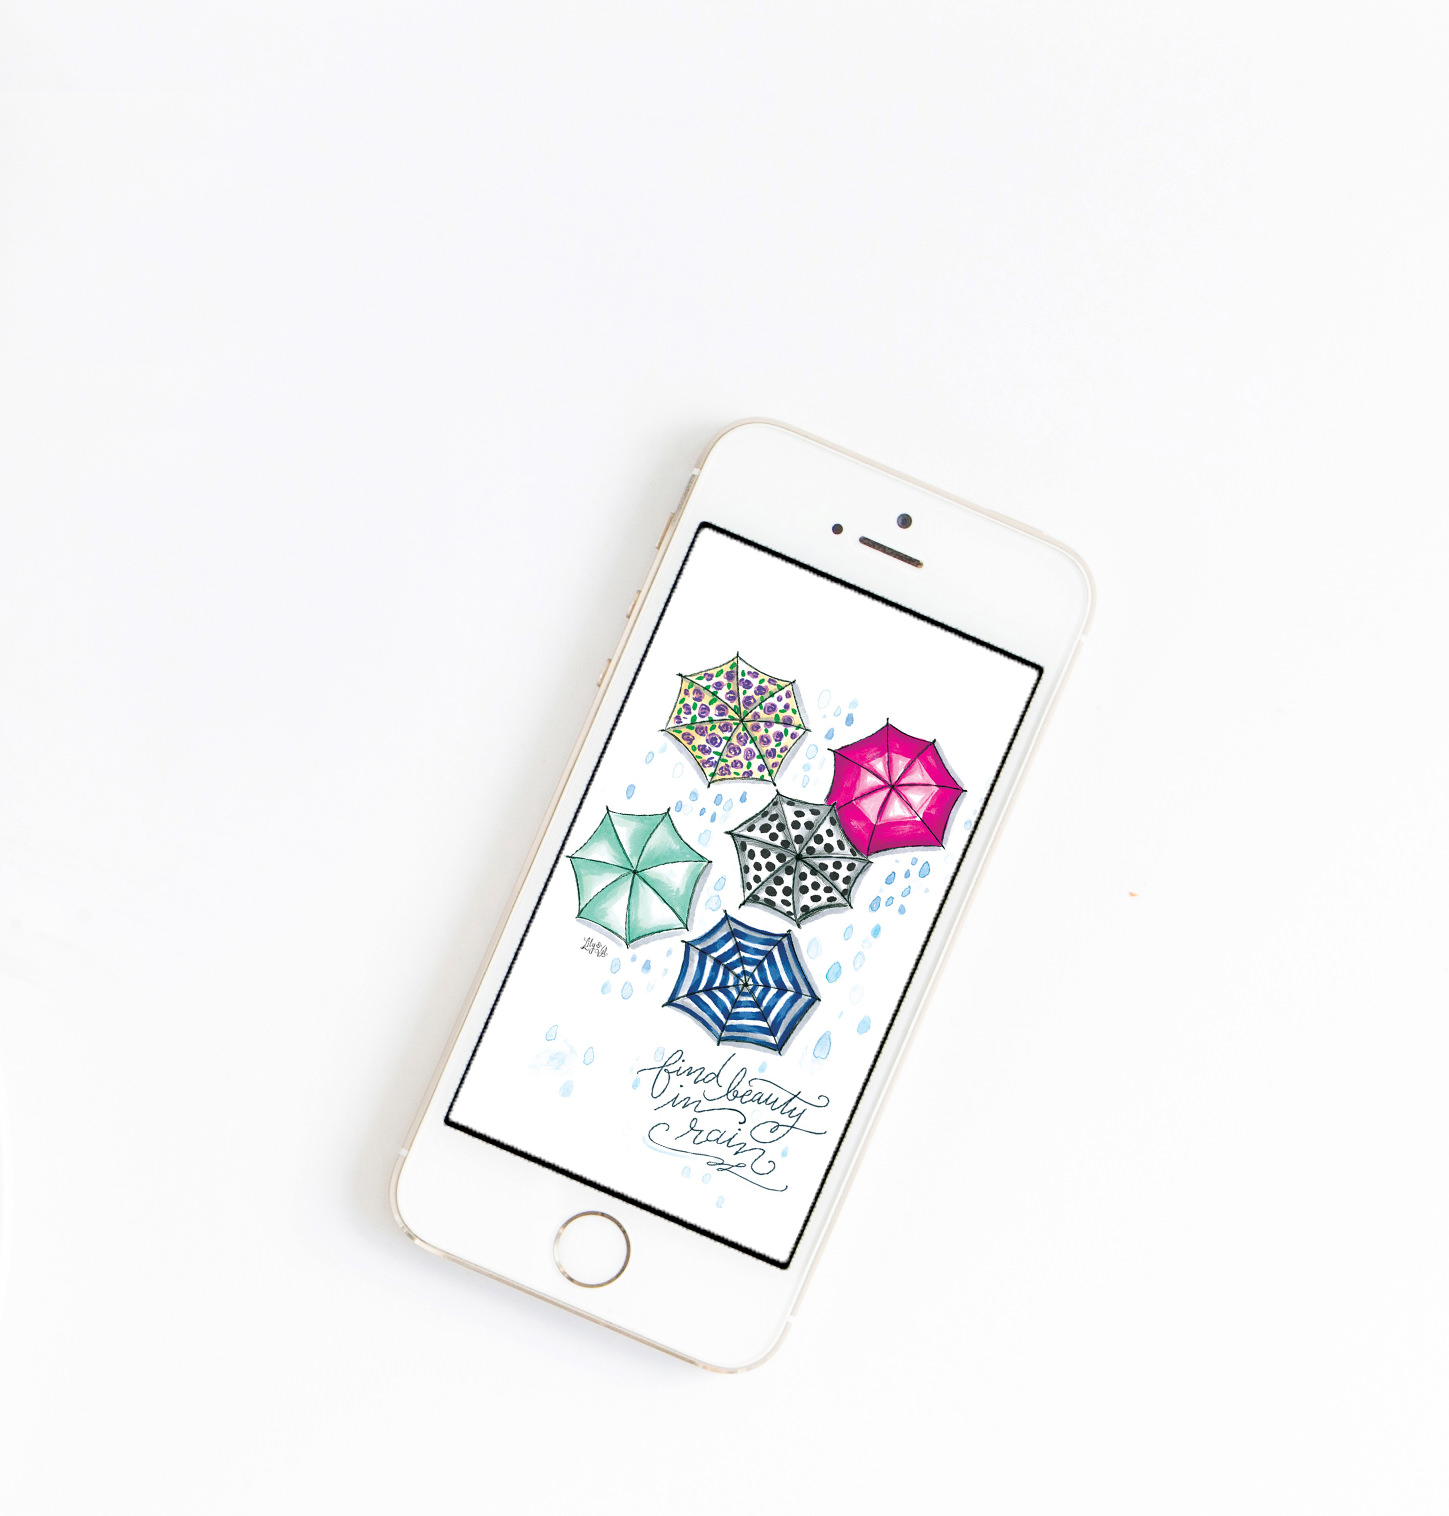 Add umbrella art to your iPhone with Lily & Val's April download!